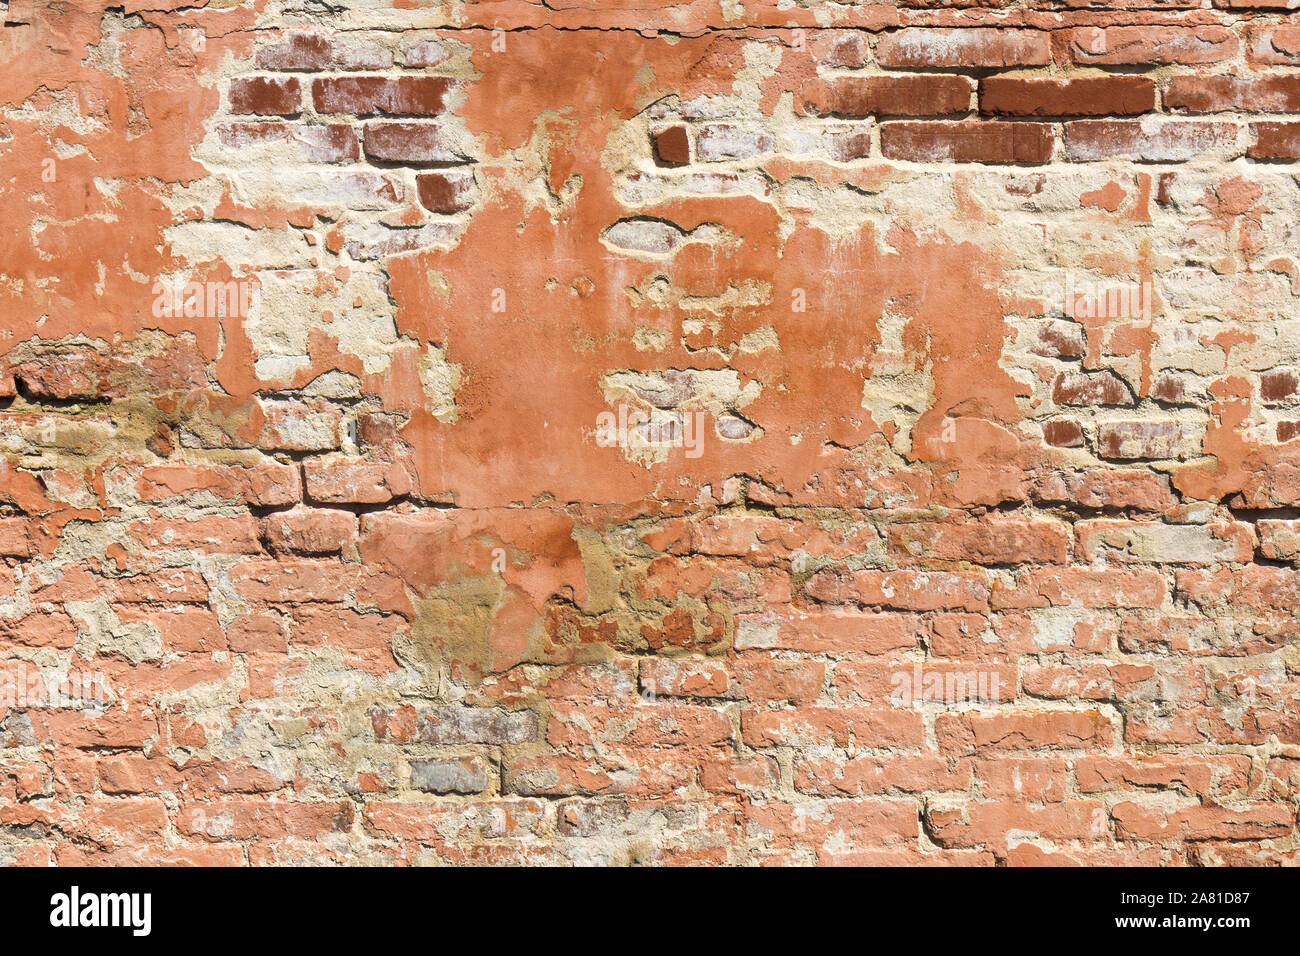 Brick wall pattern. Old wall built from the red bricks with remnants of plaster. Background texture. Stock Photo